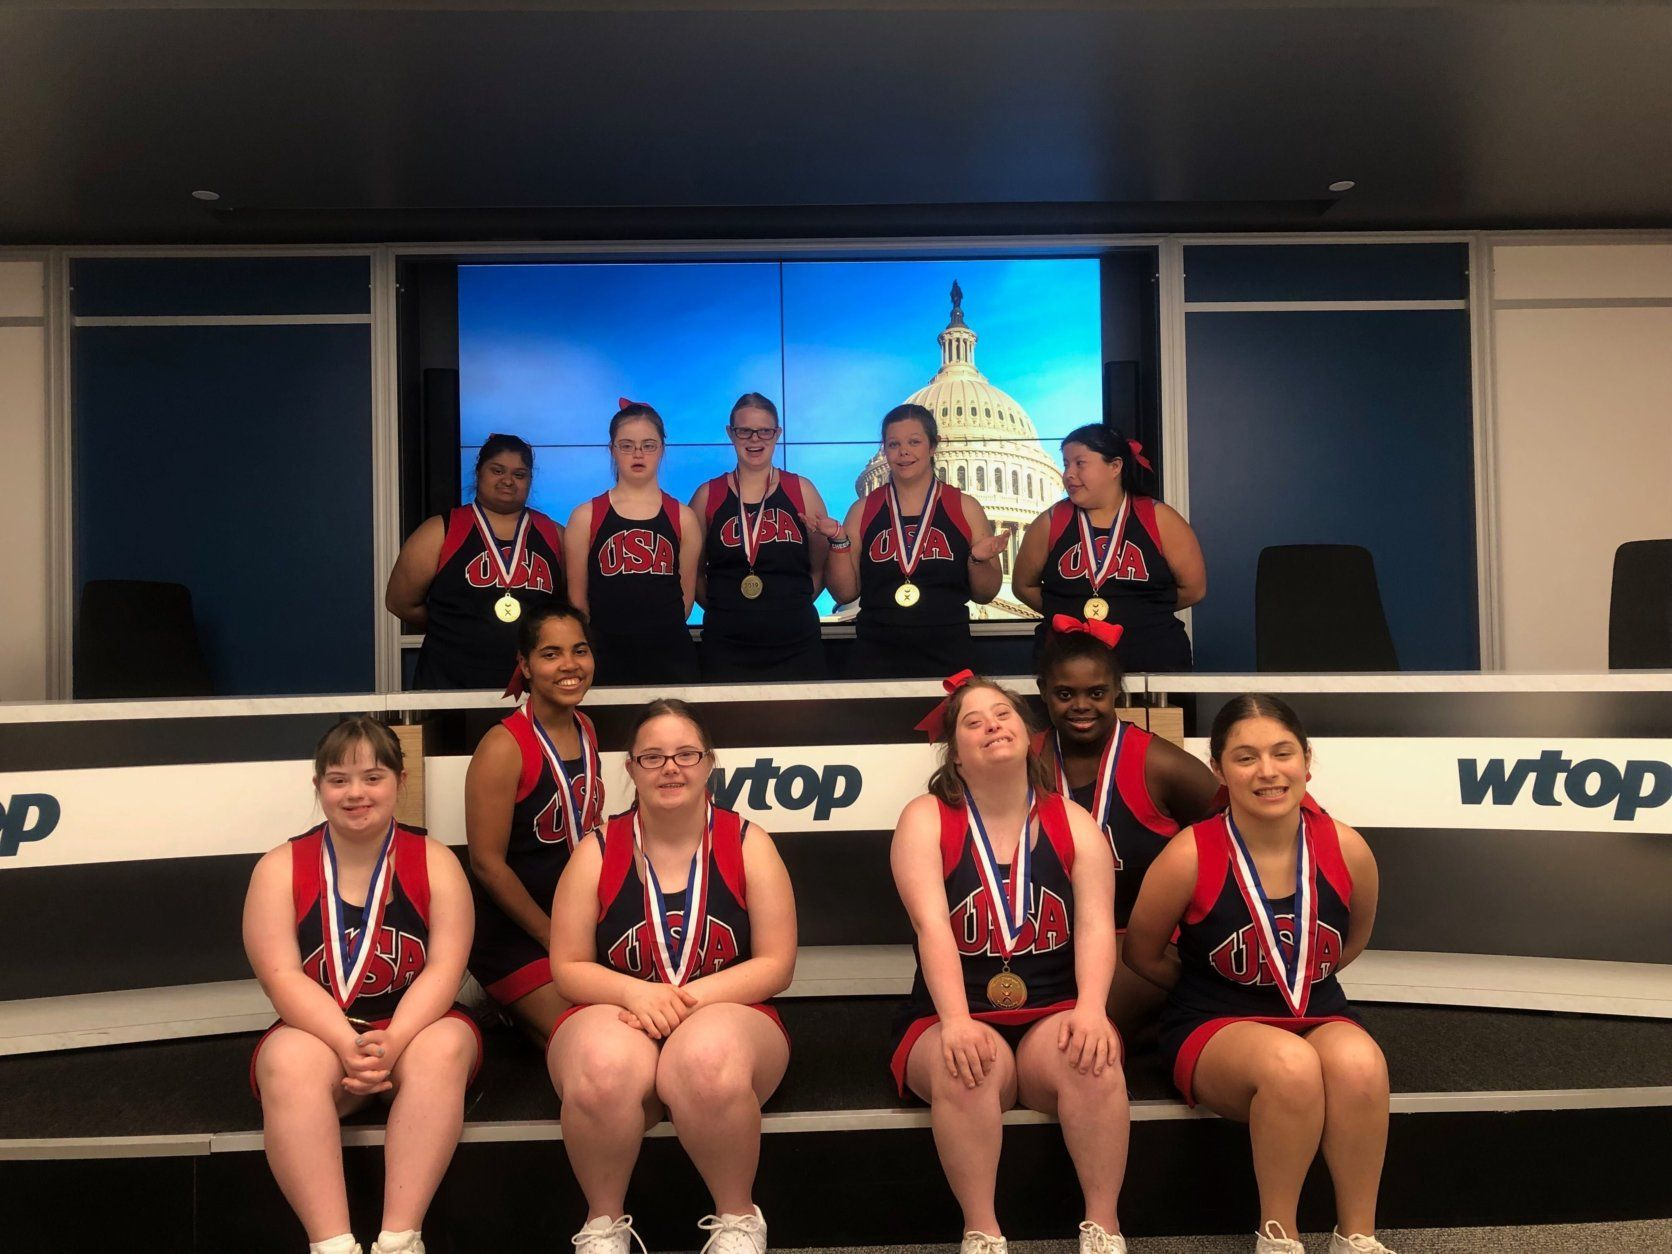 The JOY Supernovas, pictured here visiting the WTOP studios, became the first Special Olympics traditional cheerleading team to compete and win at the Cheerleading World Championships. (WTOP/Mike Murillo)